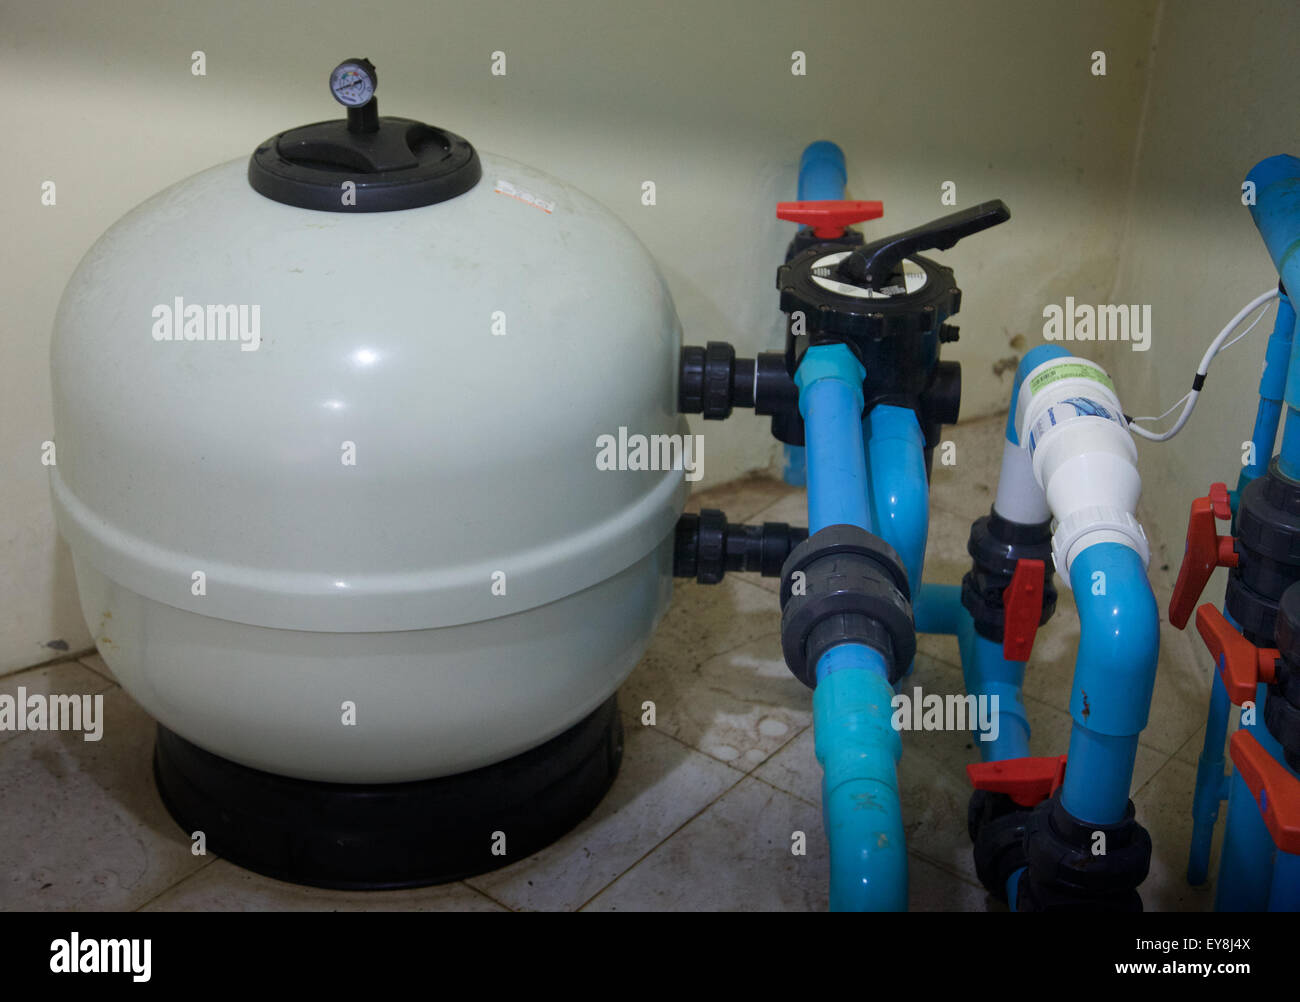 A Saltwater Swimming Pool Turbo Cell Chlorinator And Filter Thailand Stock Photo Royalty Free